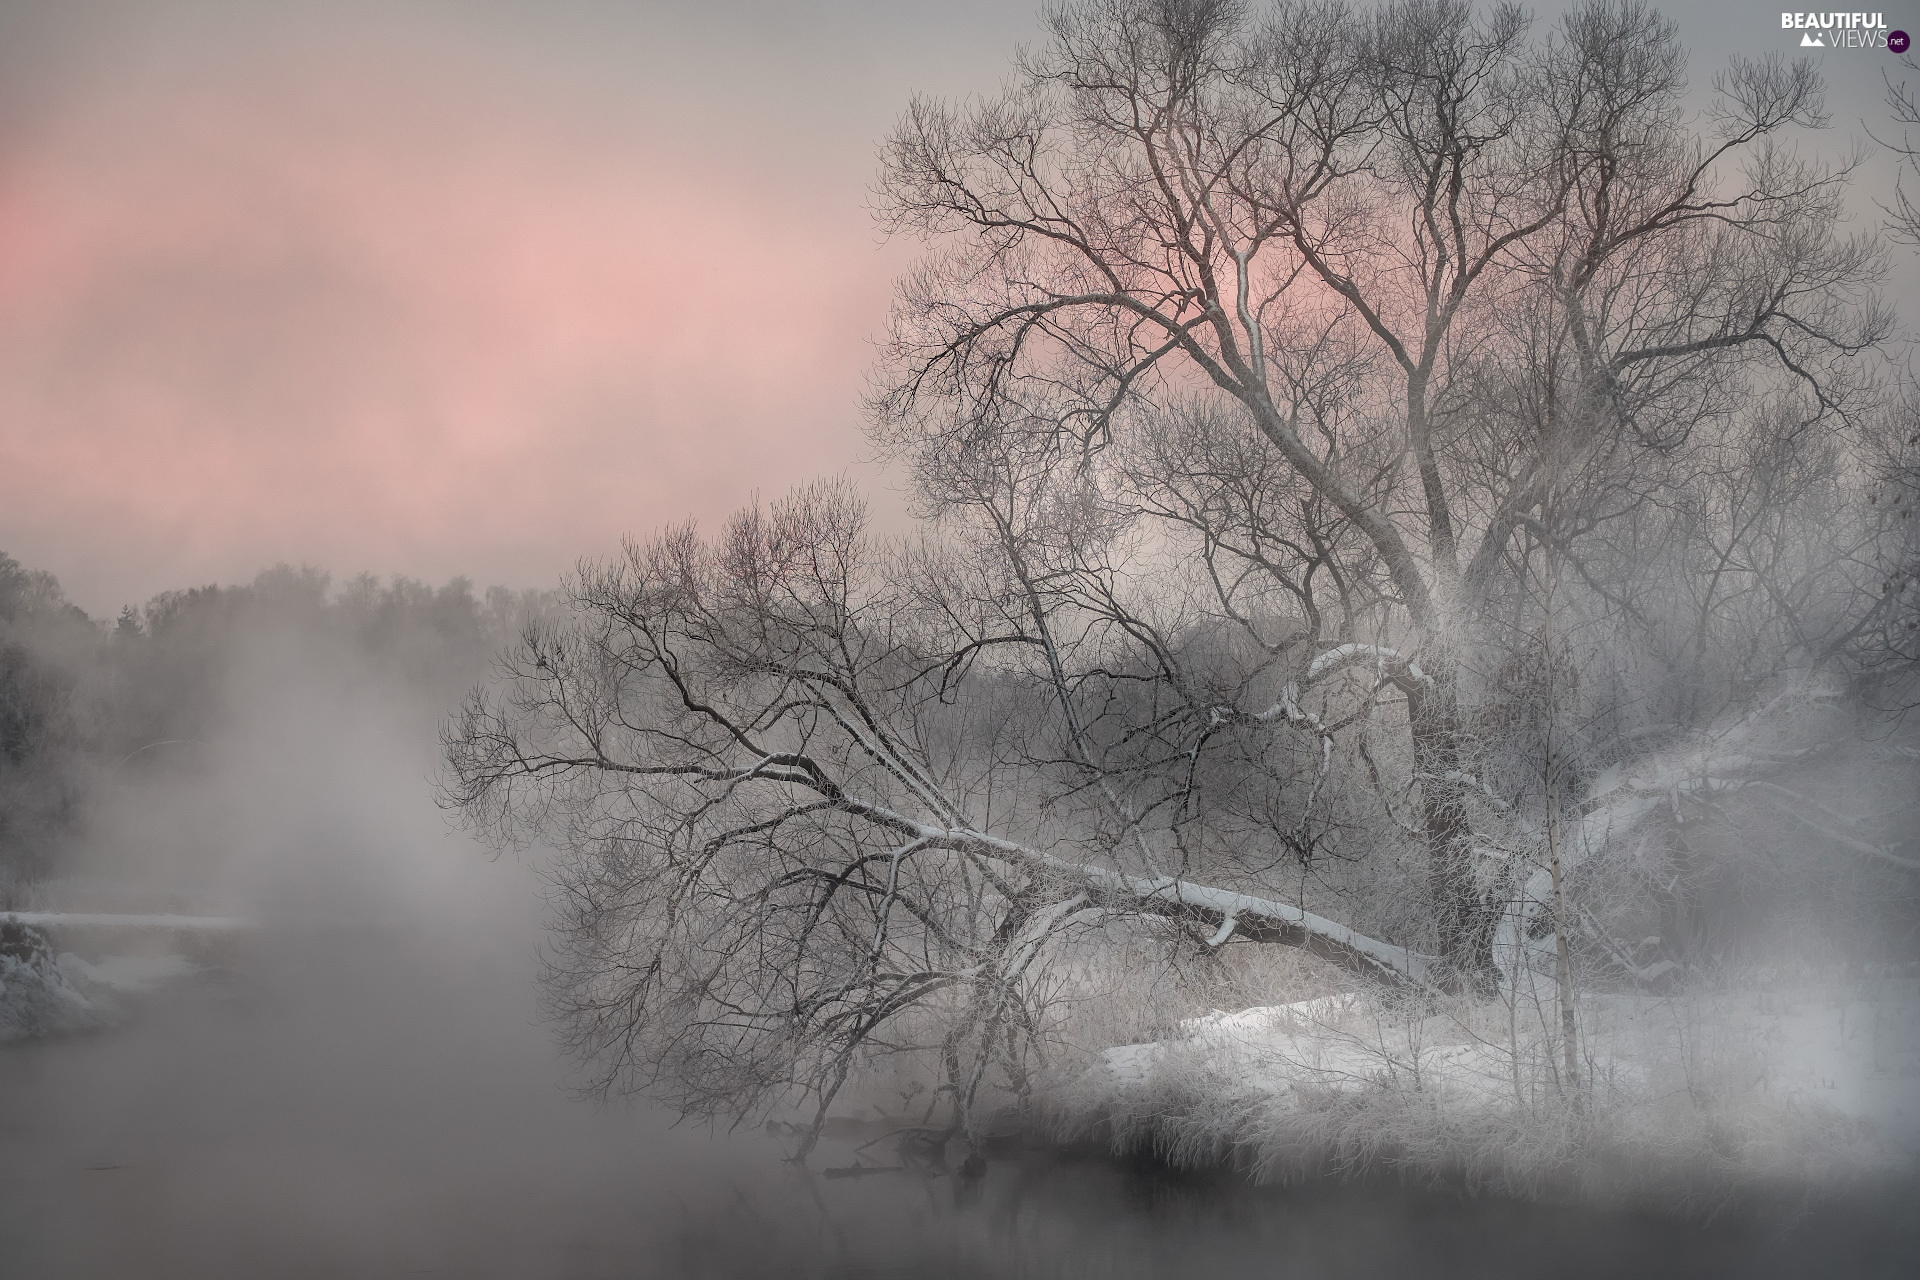 leaning, trees, River, viewes, winter, Lod on the beach, Fog